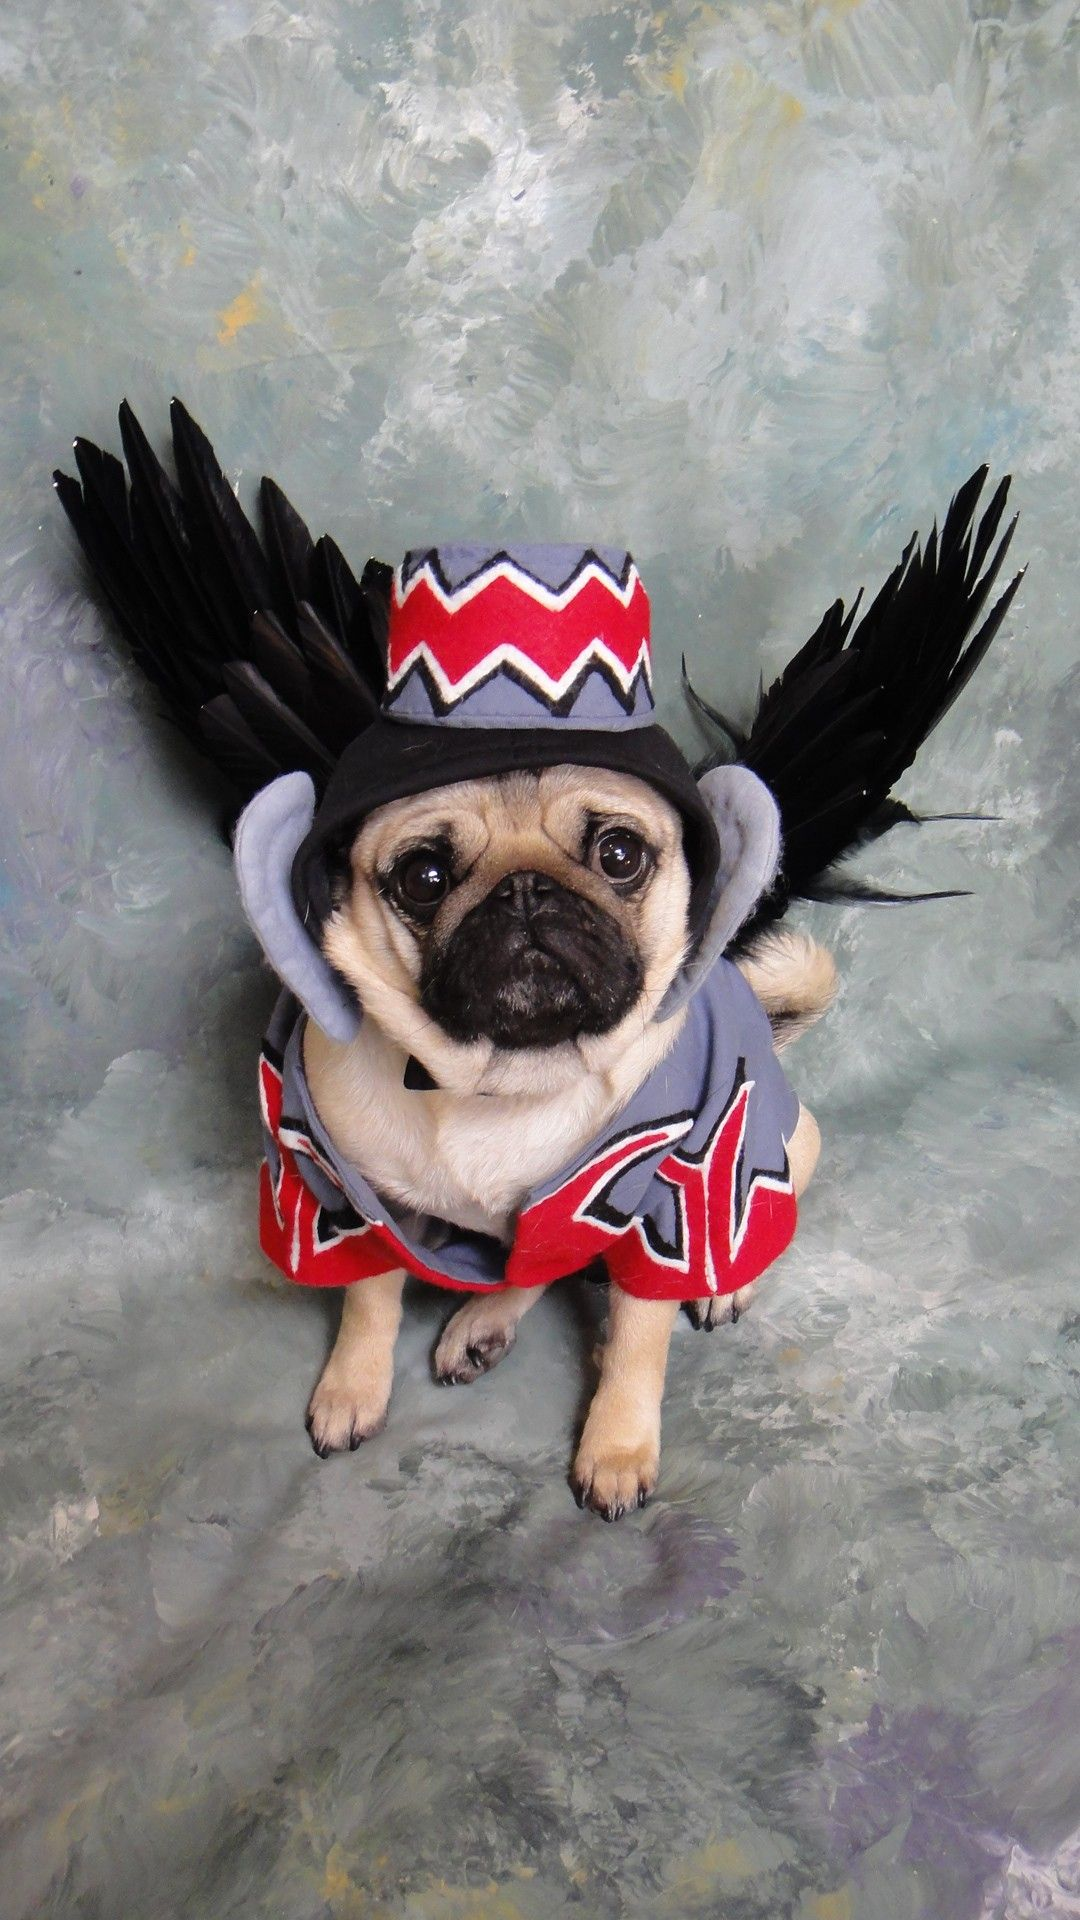 Flying Monkey Dog Costume Okay This Is Just Beyond Cute I Want